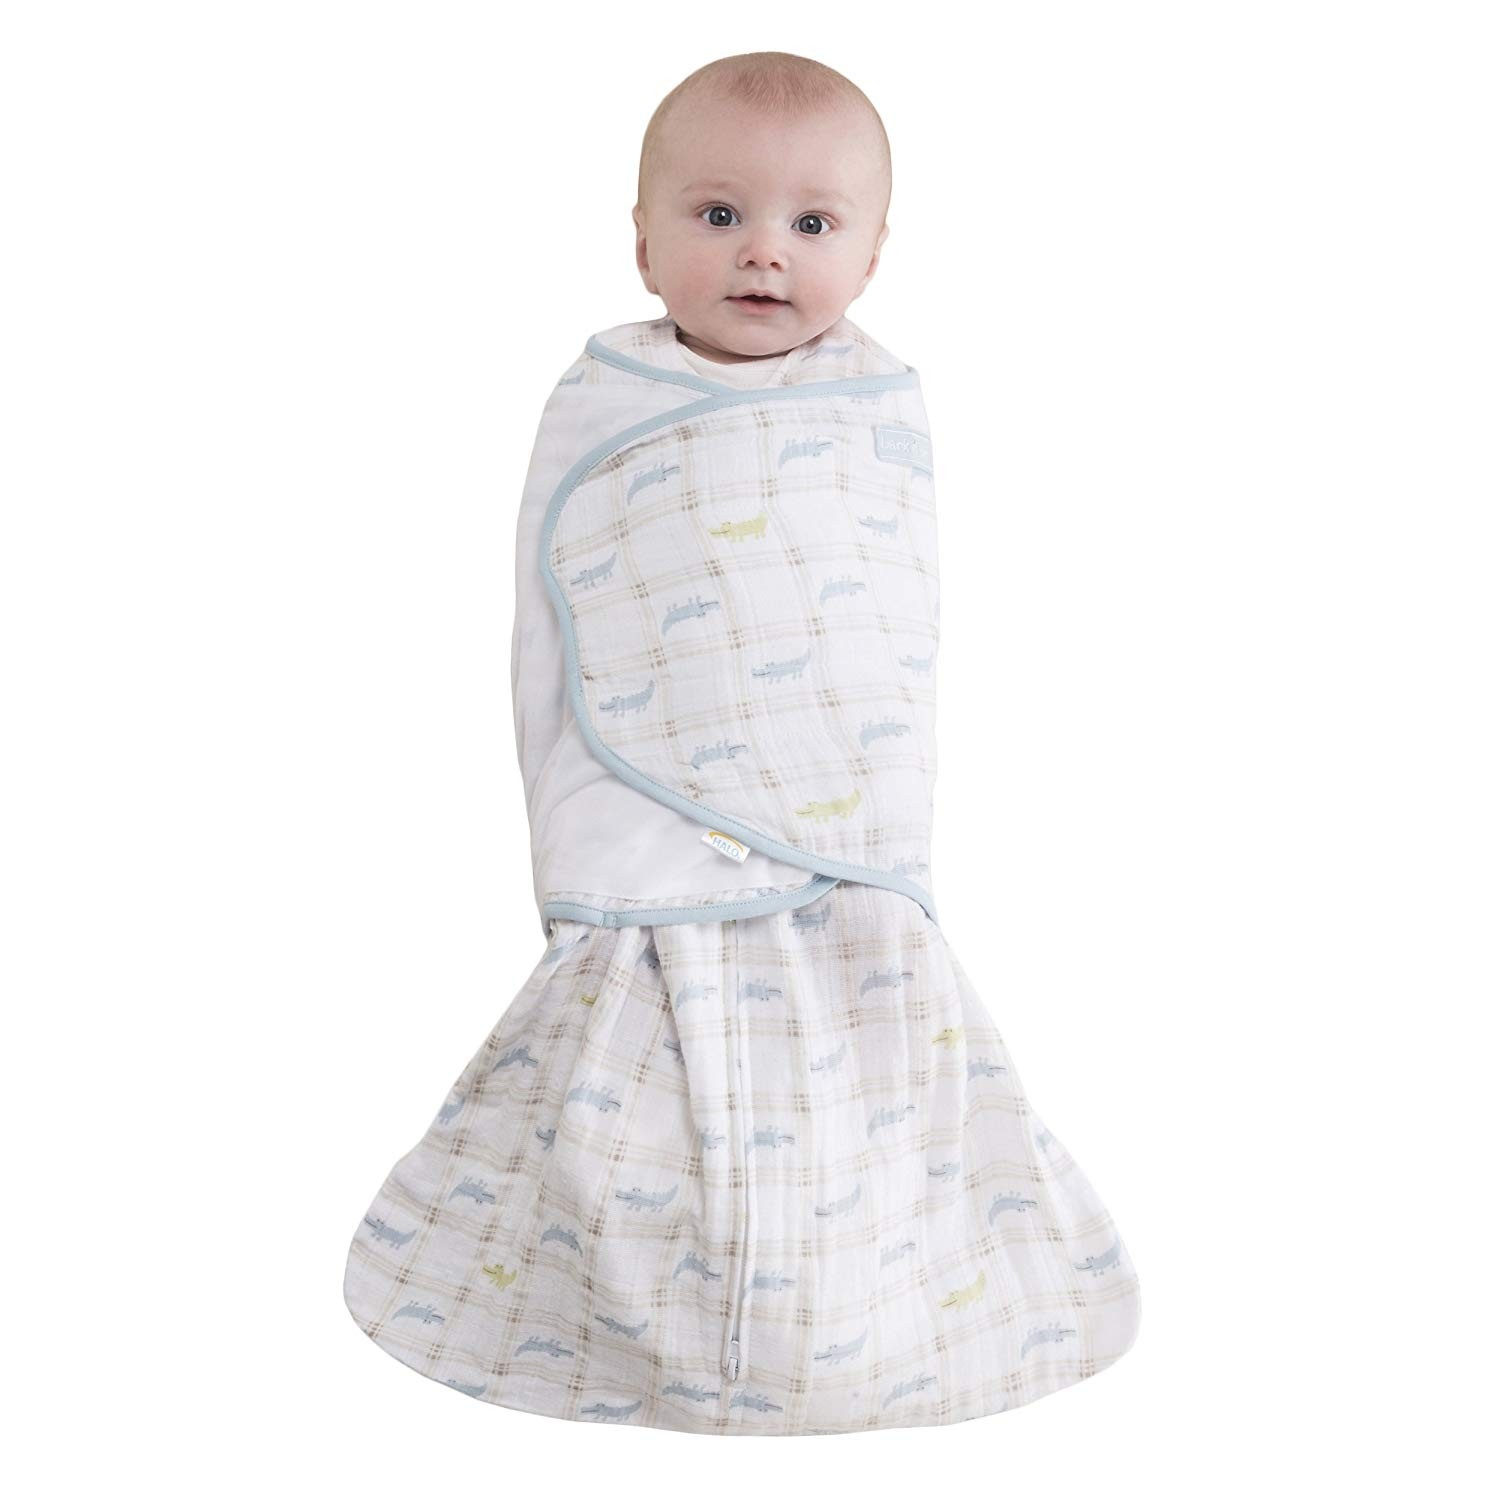 Gator Plaid Newborn HALO 100/% Cotton Muslin Sleepsack Swaddle